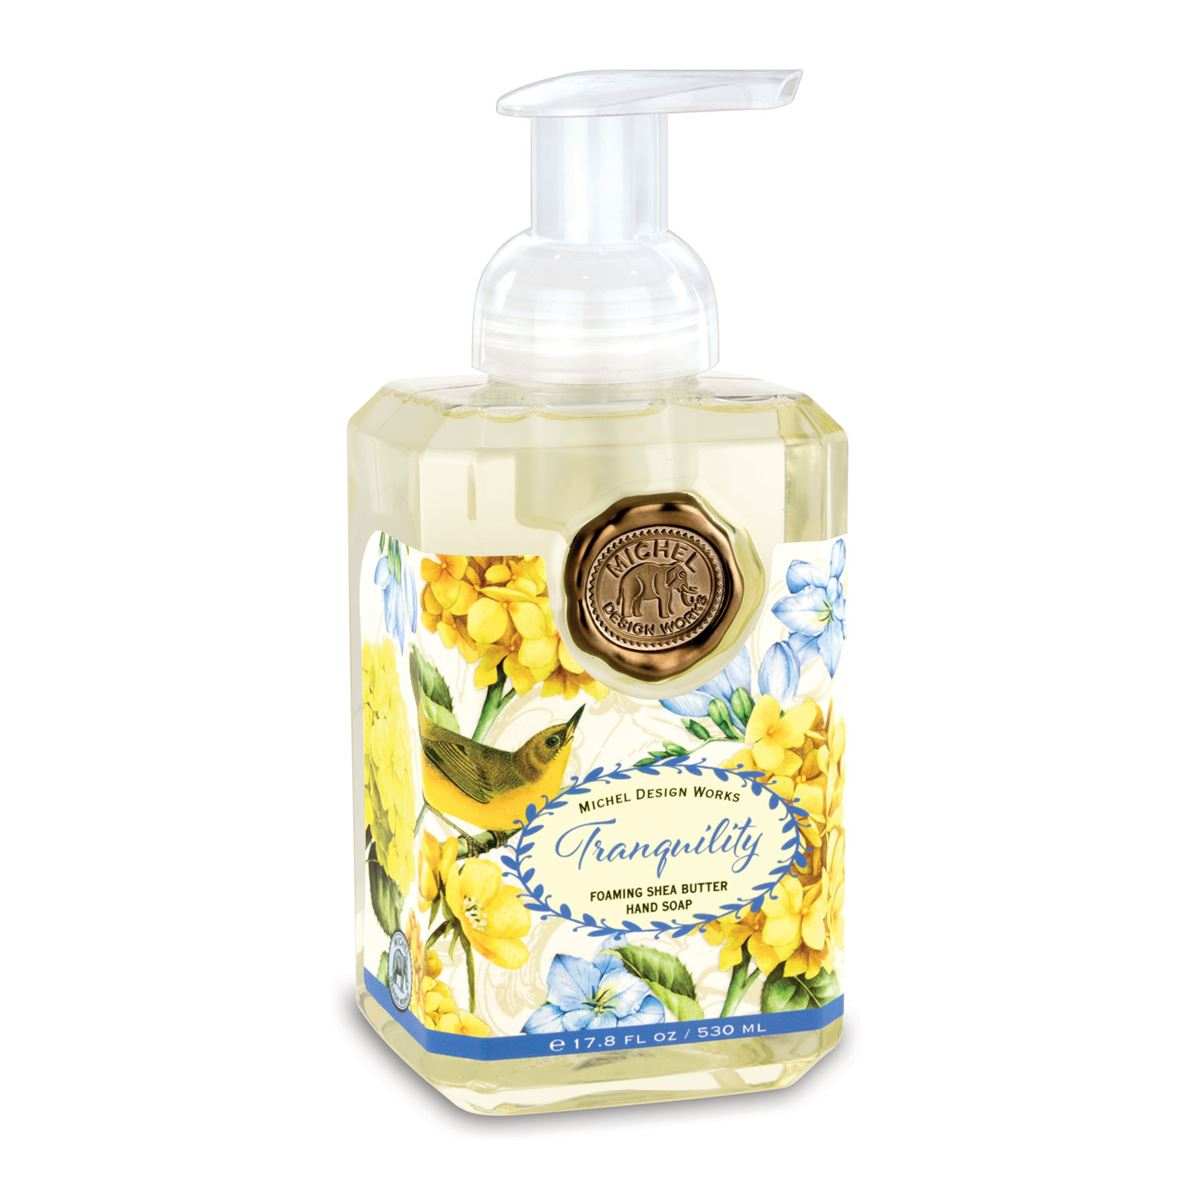 Michel Design Works Tranquility Foaming Hand Soap 17 8oz,Acrylic Nail Designs Natural Colors